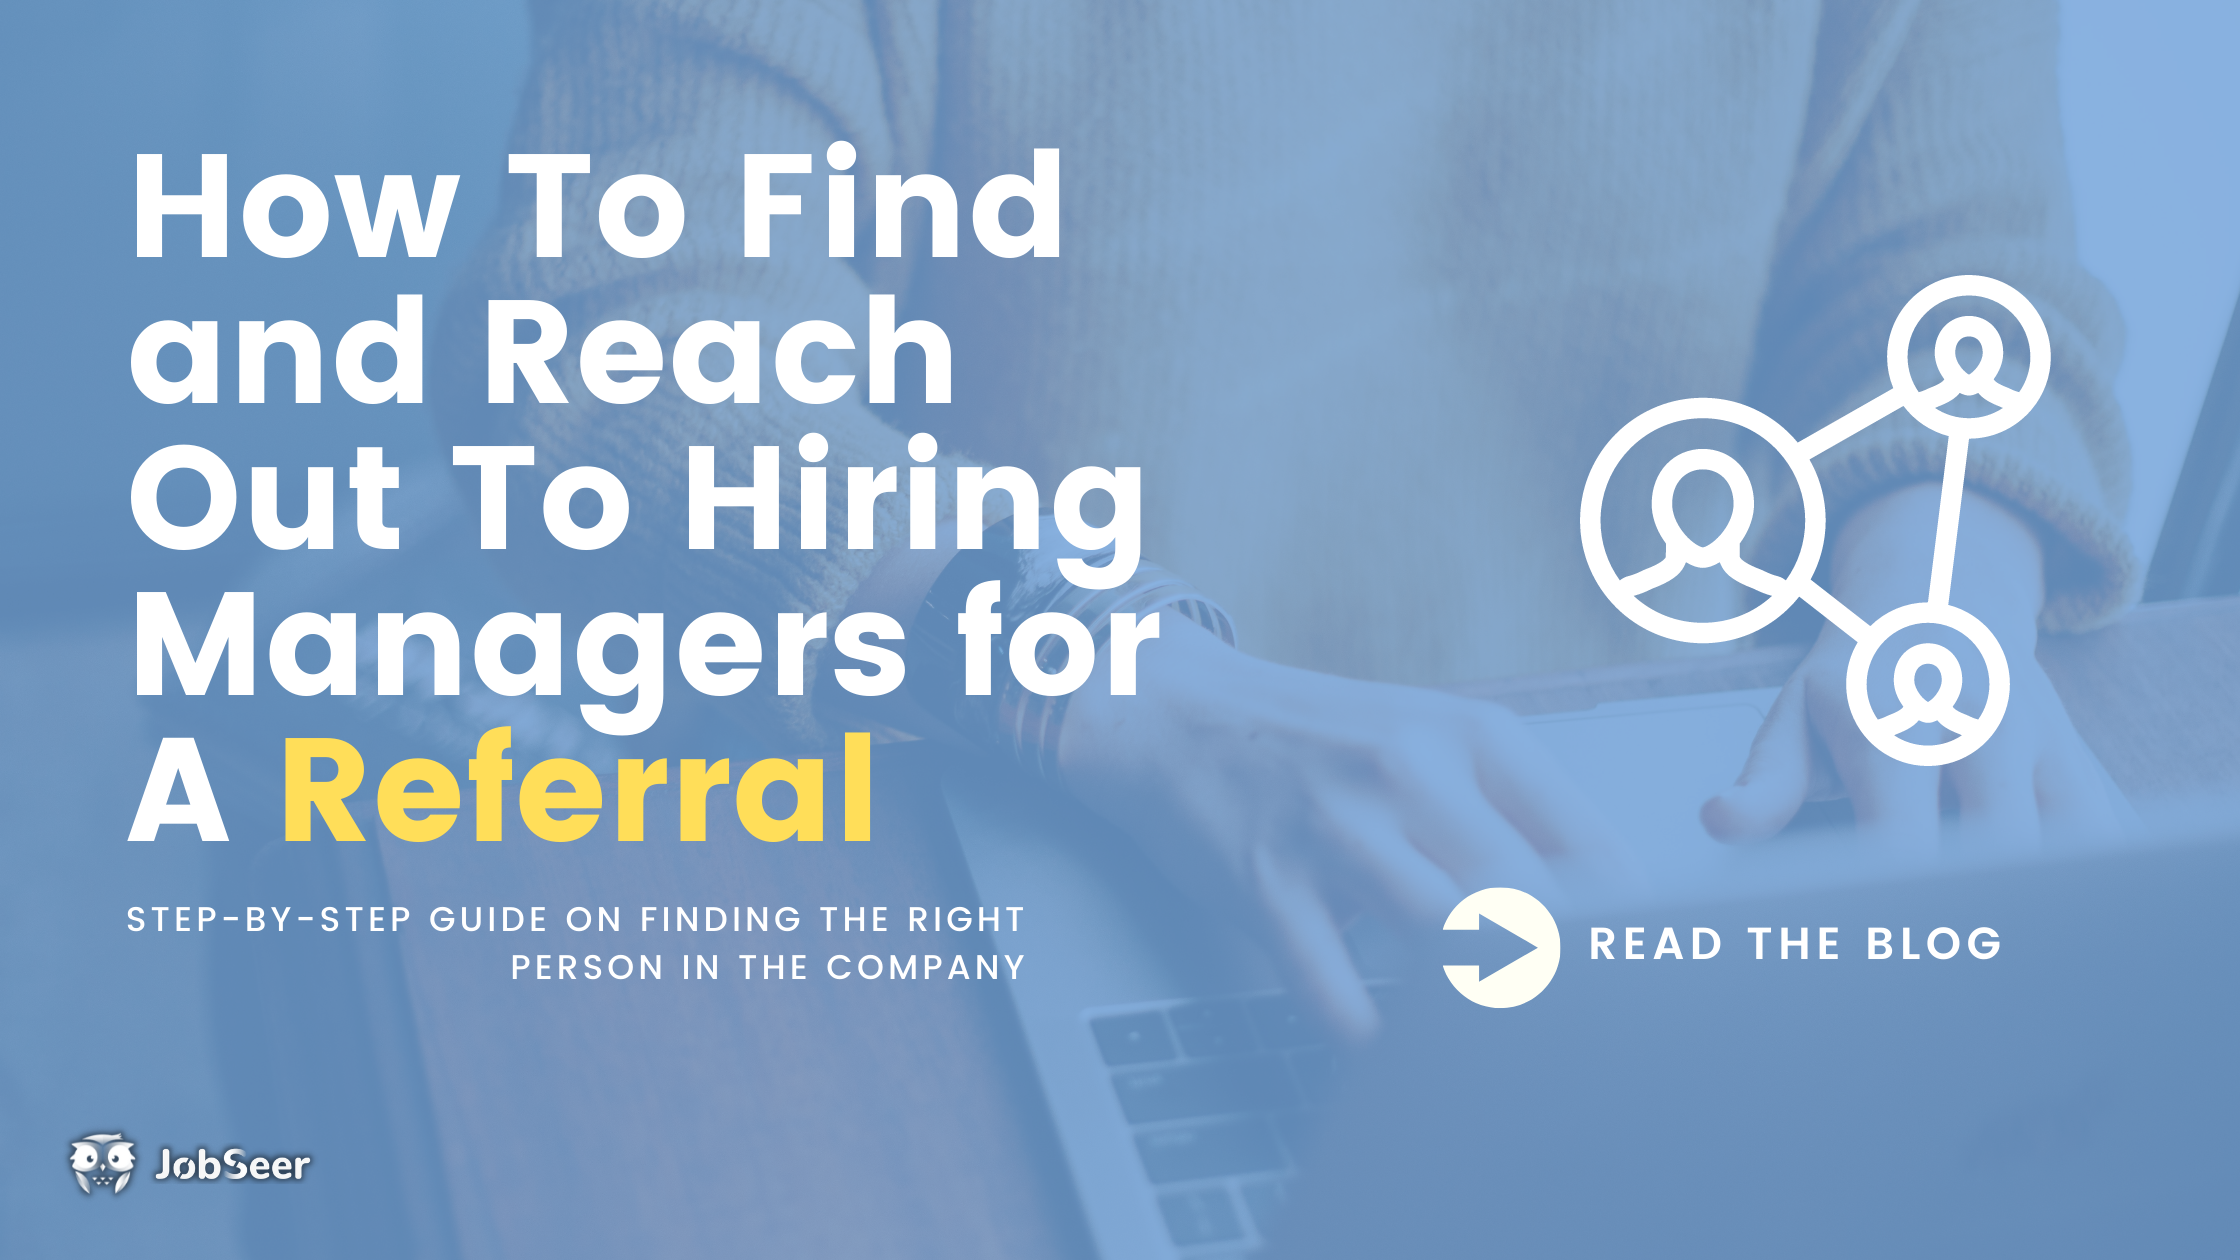 How To Find and Reach Out To Hiring Managers for A Referral